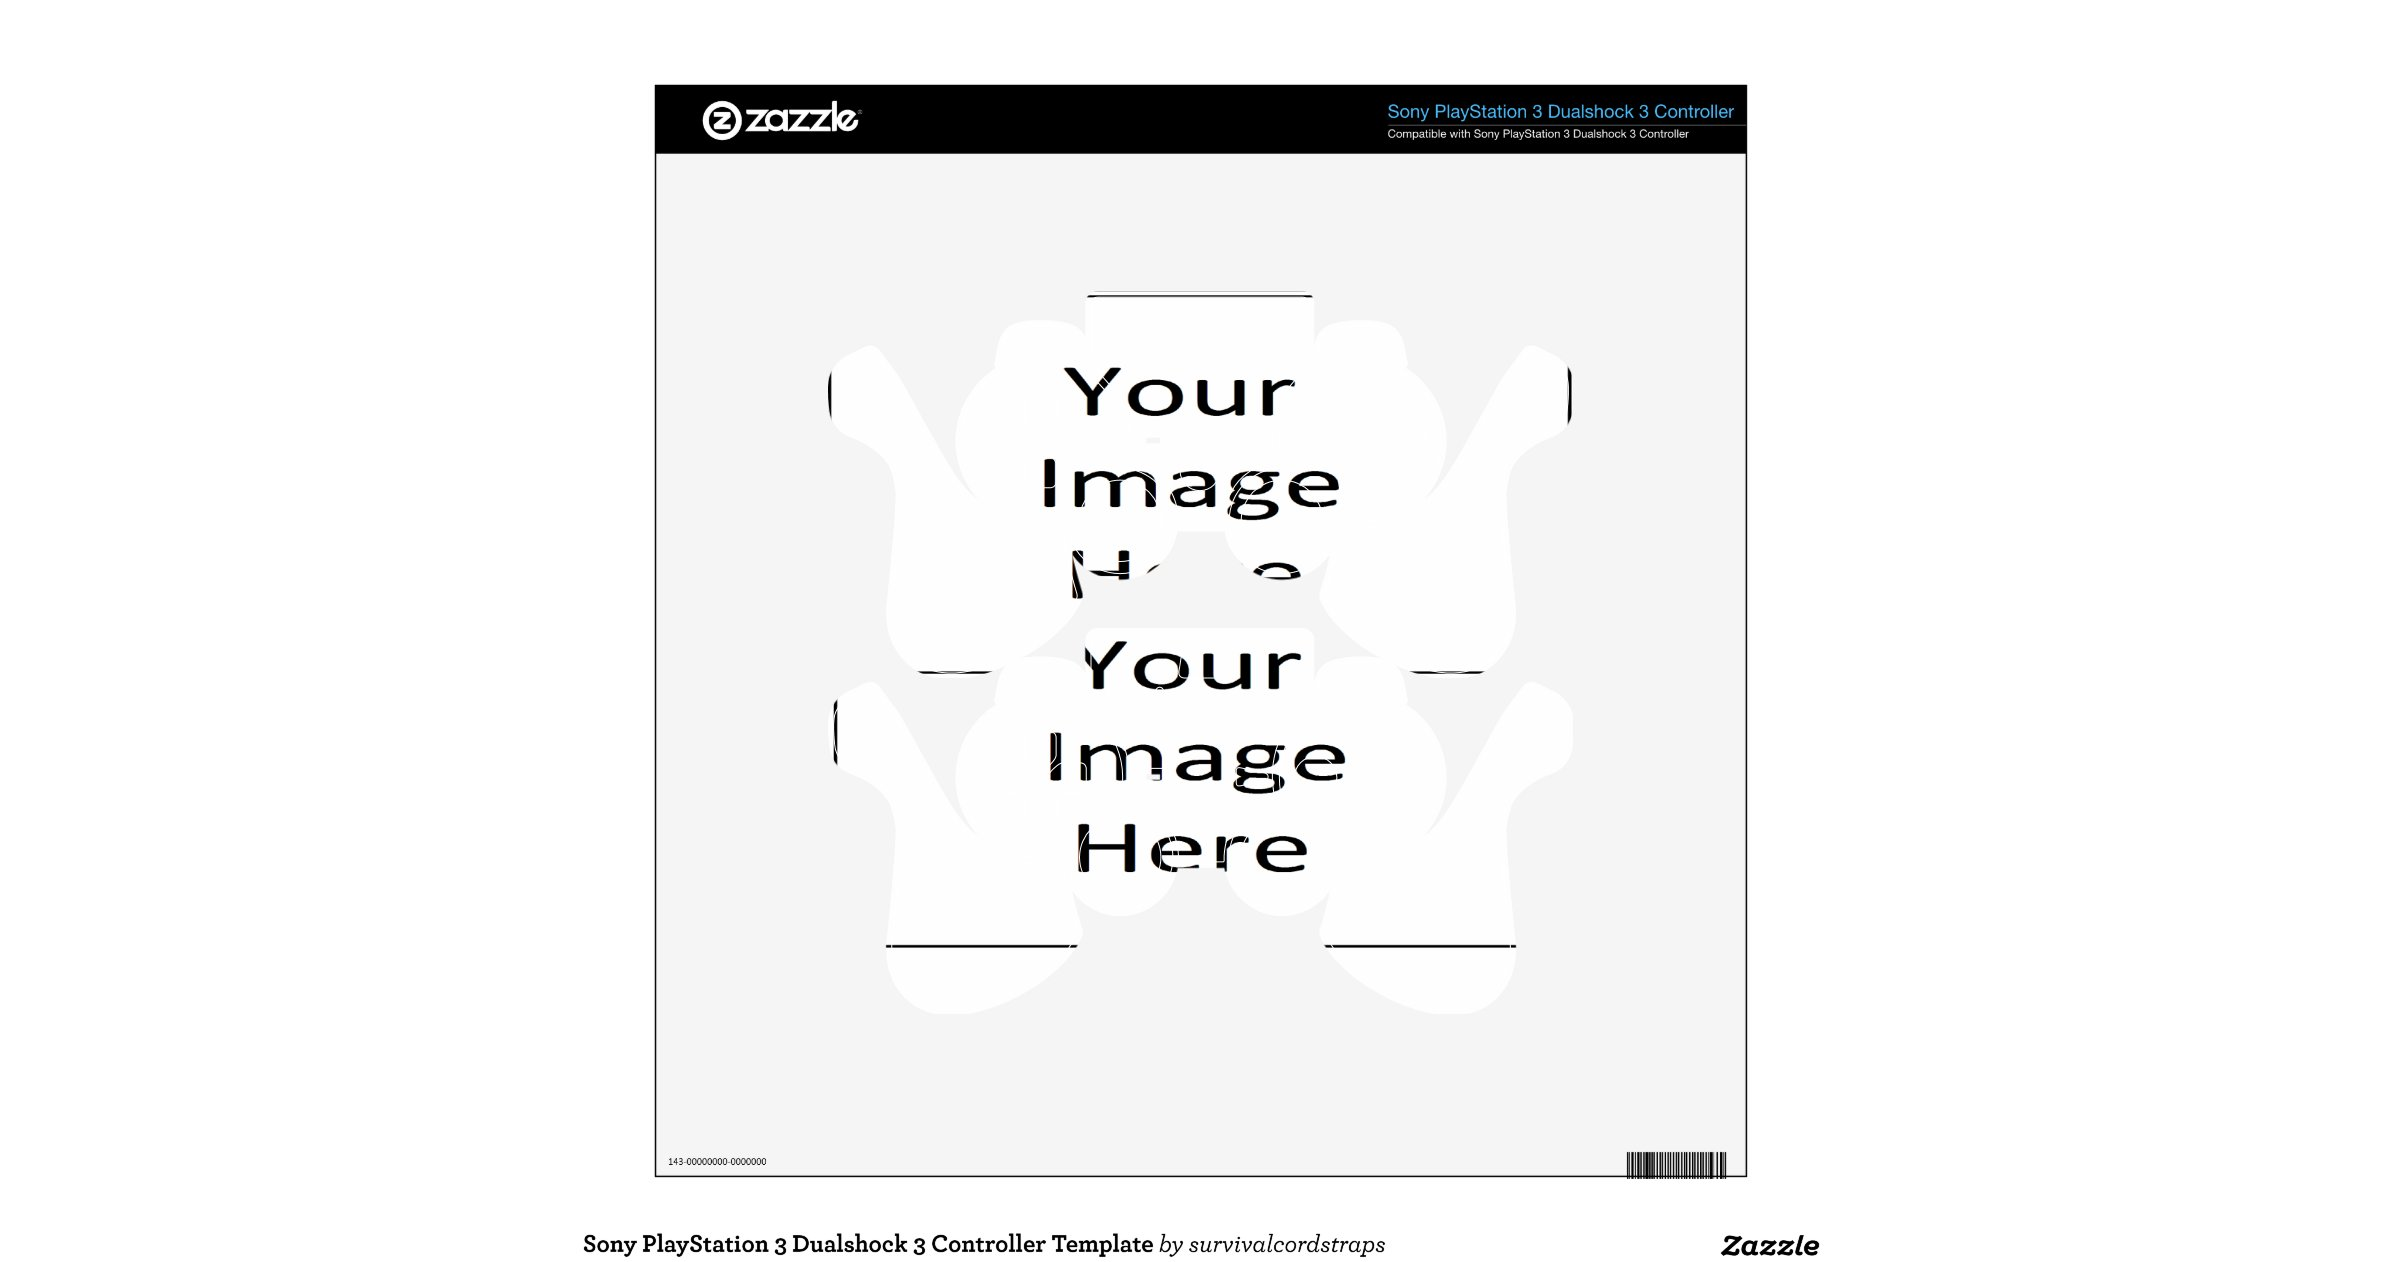 Sony PlayStation 3 Dualshock 3 Controller Template PS3